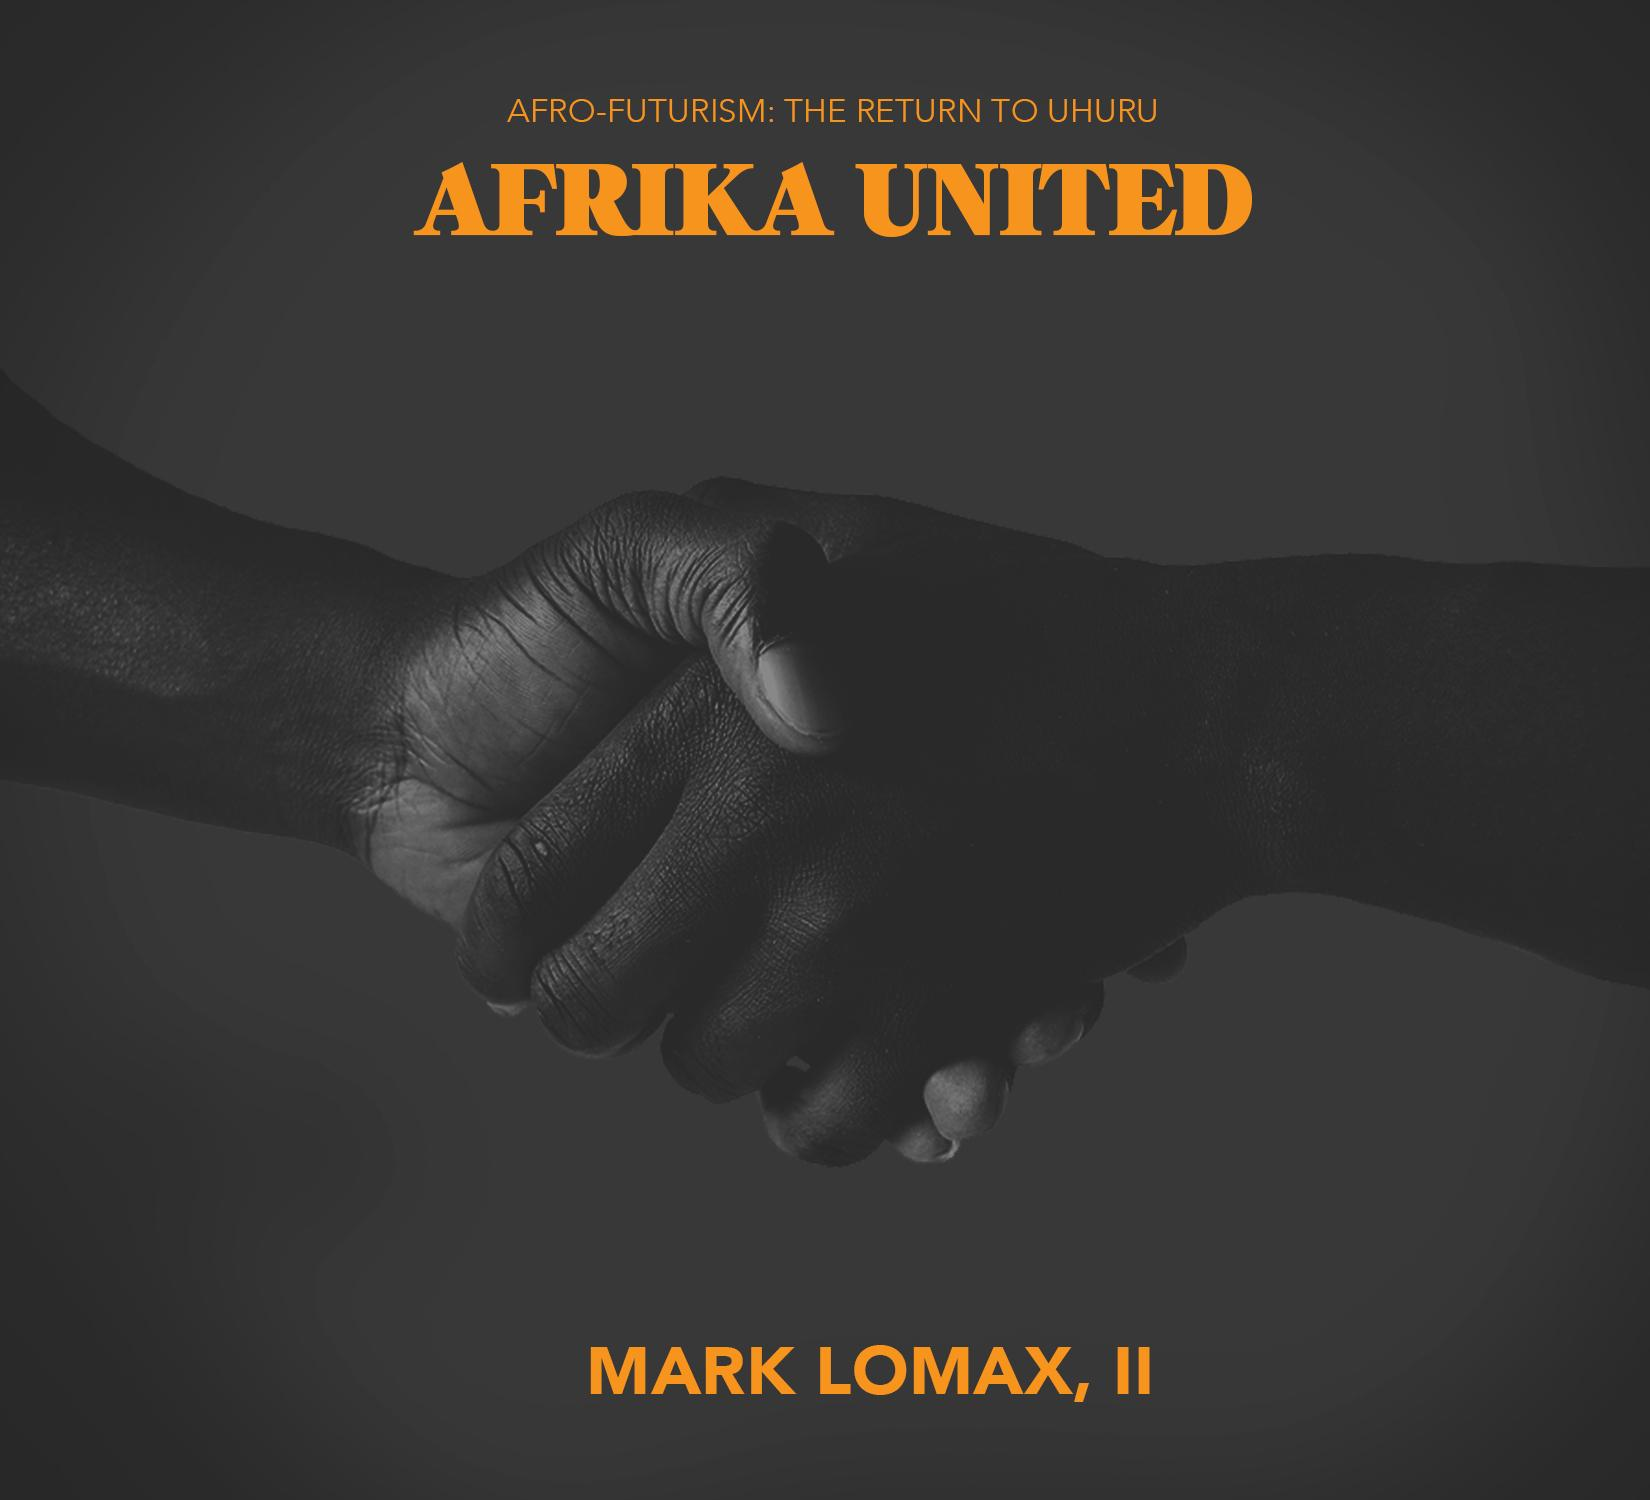 Mark Lomax, II — 400: An Afrikan Epic, Vol.12 - Afrika United